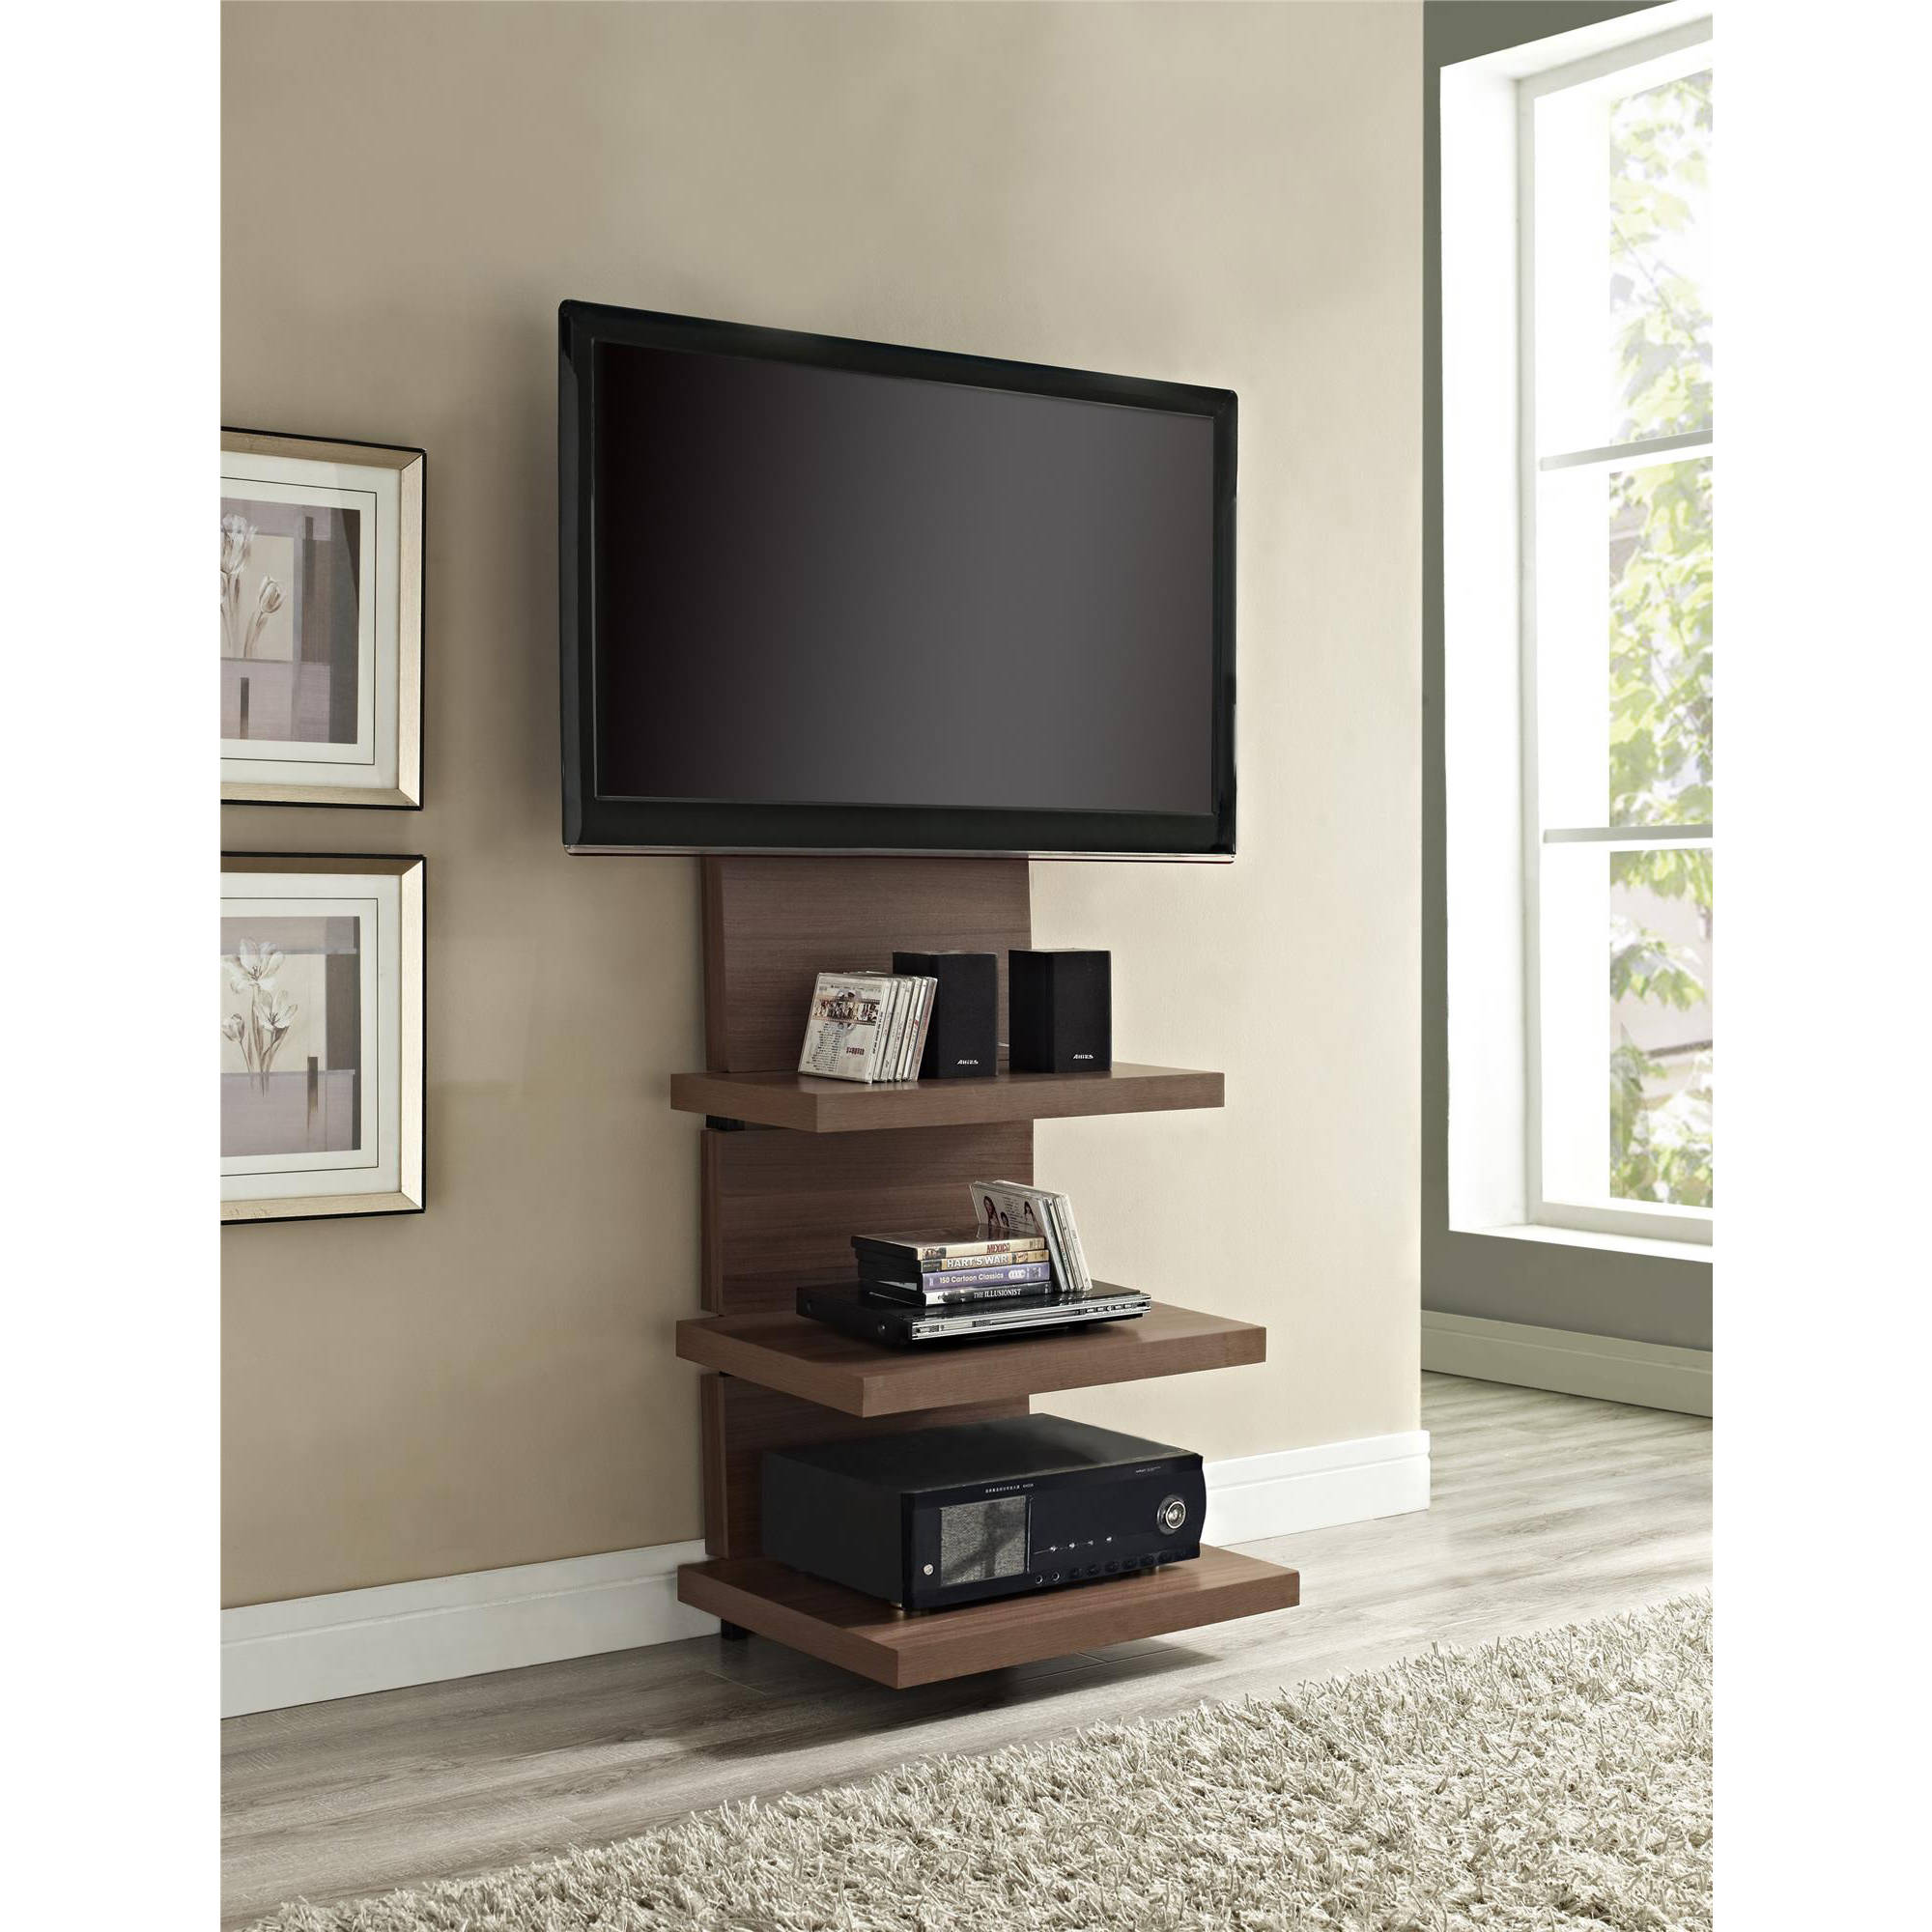 Wall Mount Black Espresso TV Stand with 3 Shelves, for TVs up to 60""